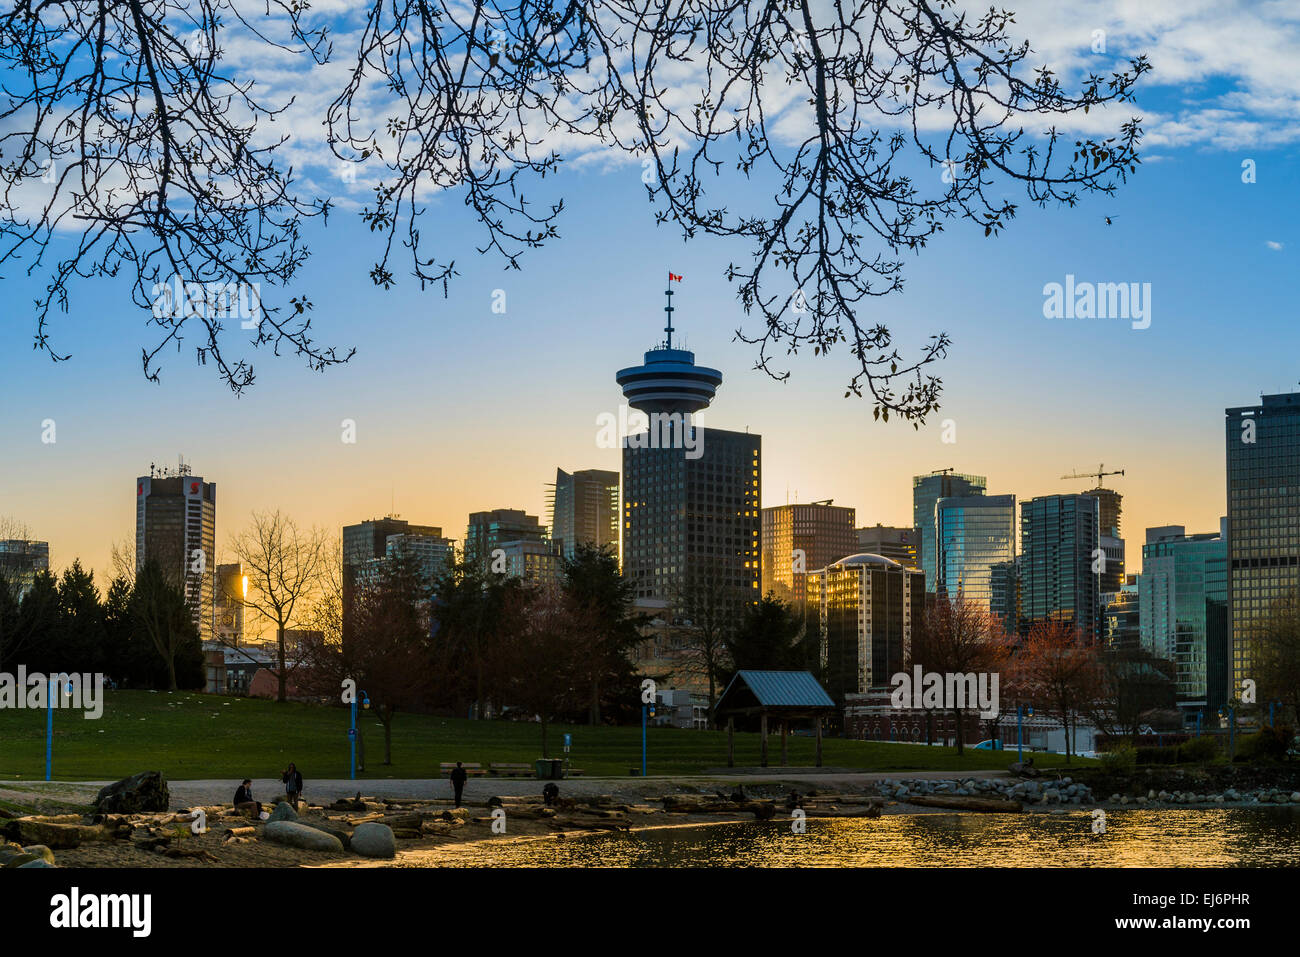 Harbour Centre Tower and Vancouver skyline, Crab / Portside Park, Vancouver, British Columbia, Canada - Stock Image